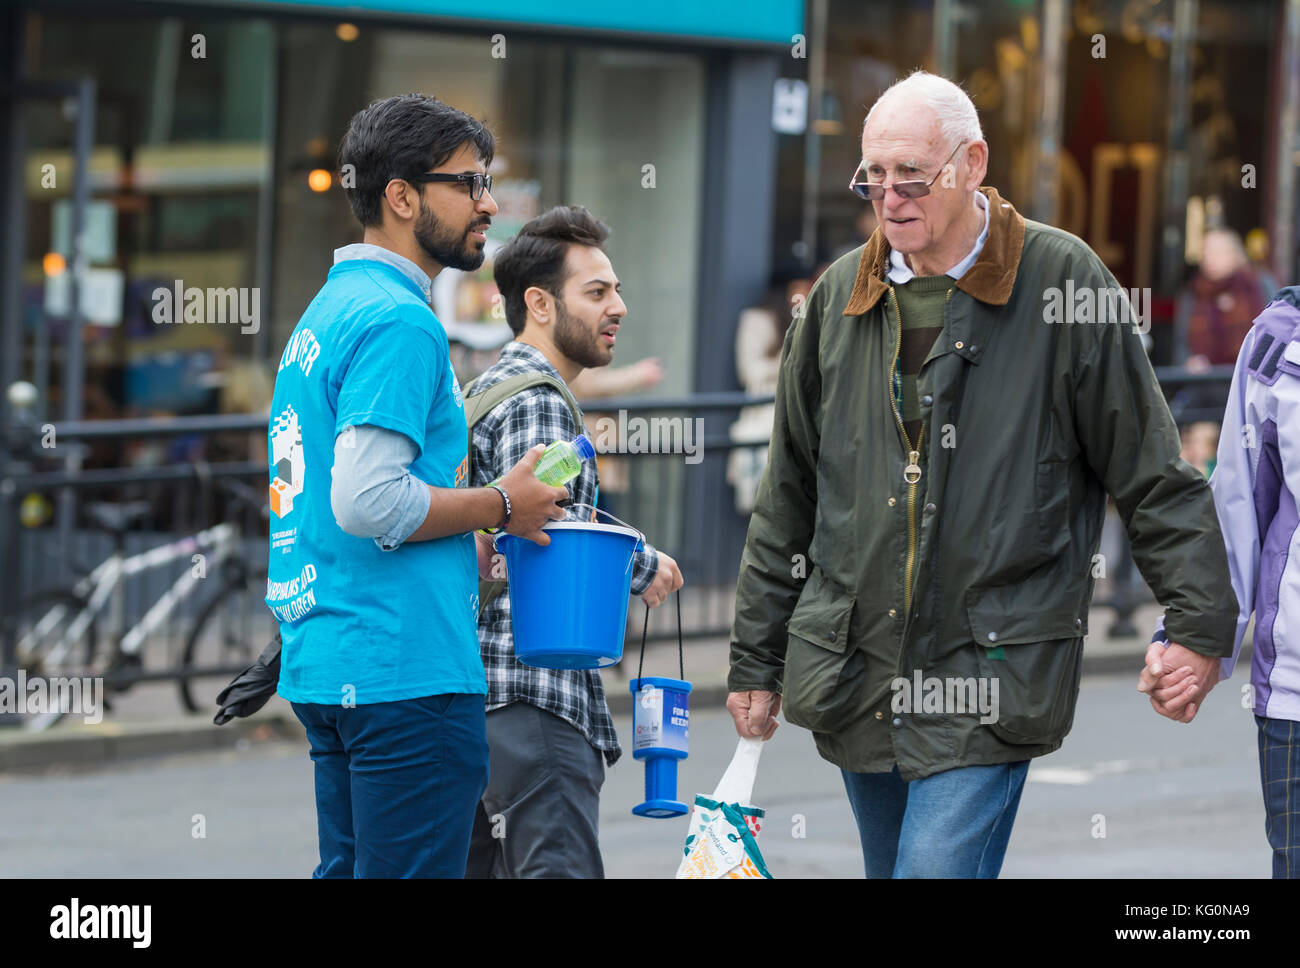 Man walking past people collecting for charity. NOTE: This man was NOT ignoring them. This is a concept image just - Stock Image